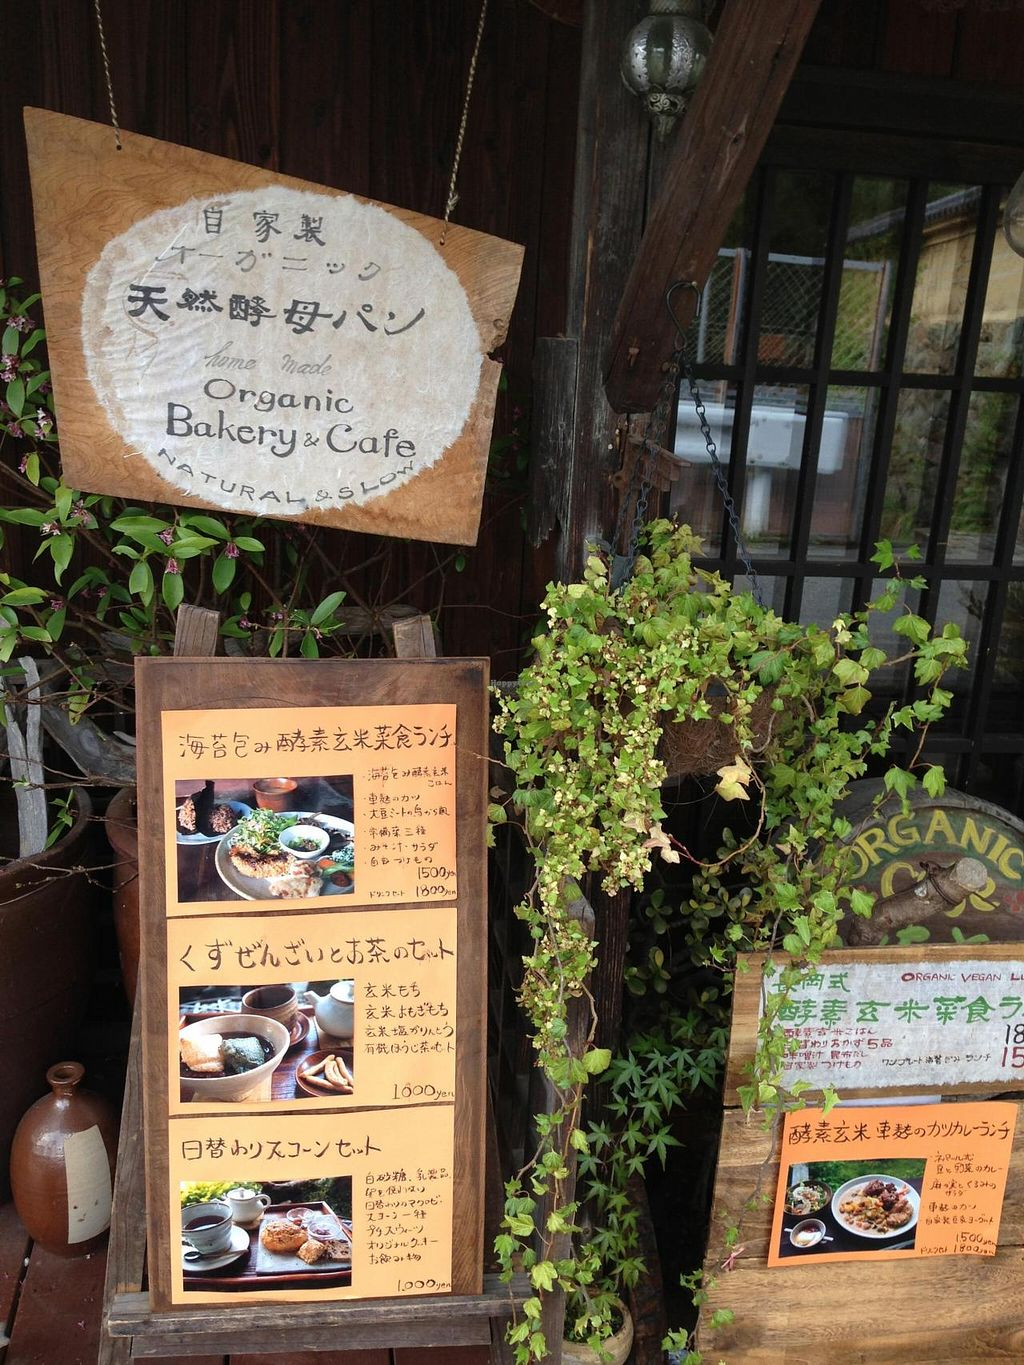 """Photo of Hanasaka  by <a href=""""/members/profile/Vegeiko"""">Vegeiko</a> <br/>Outside of the restaurant  <br/> May 2, 2014  - <a href='/contact/abuse/image/46968/69133'>Report</a>"""